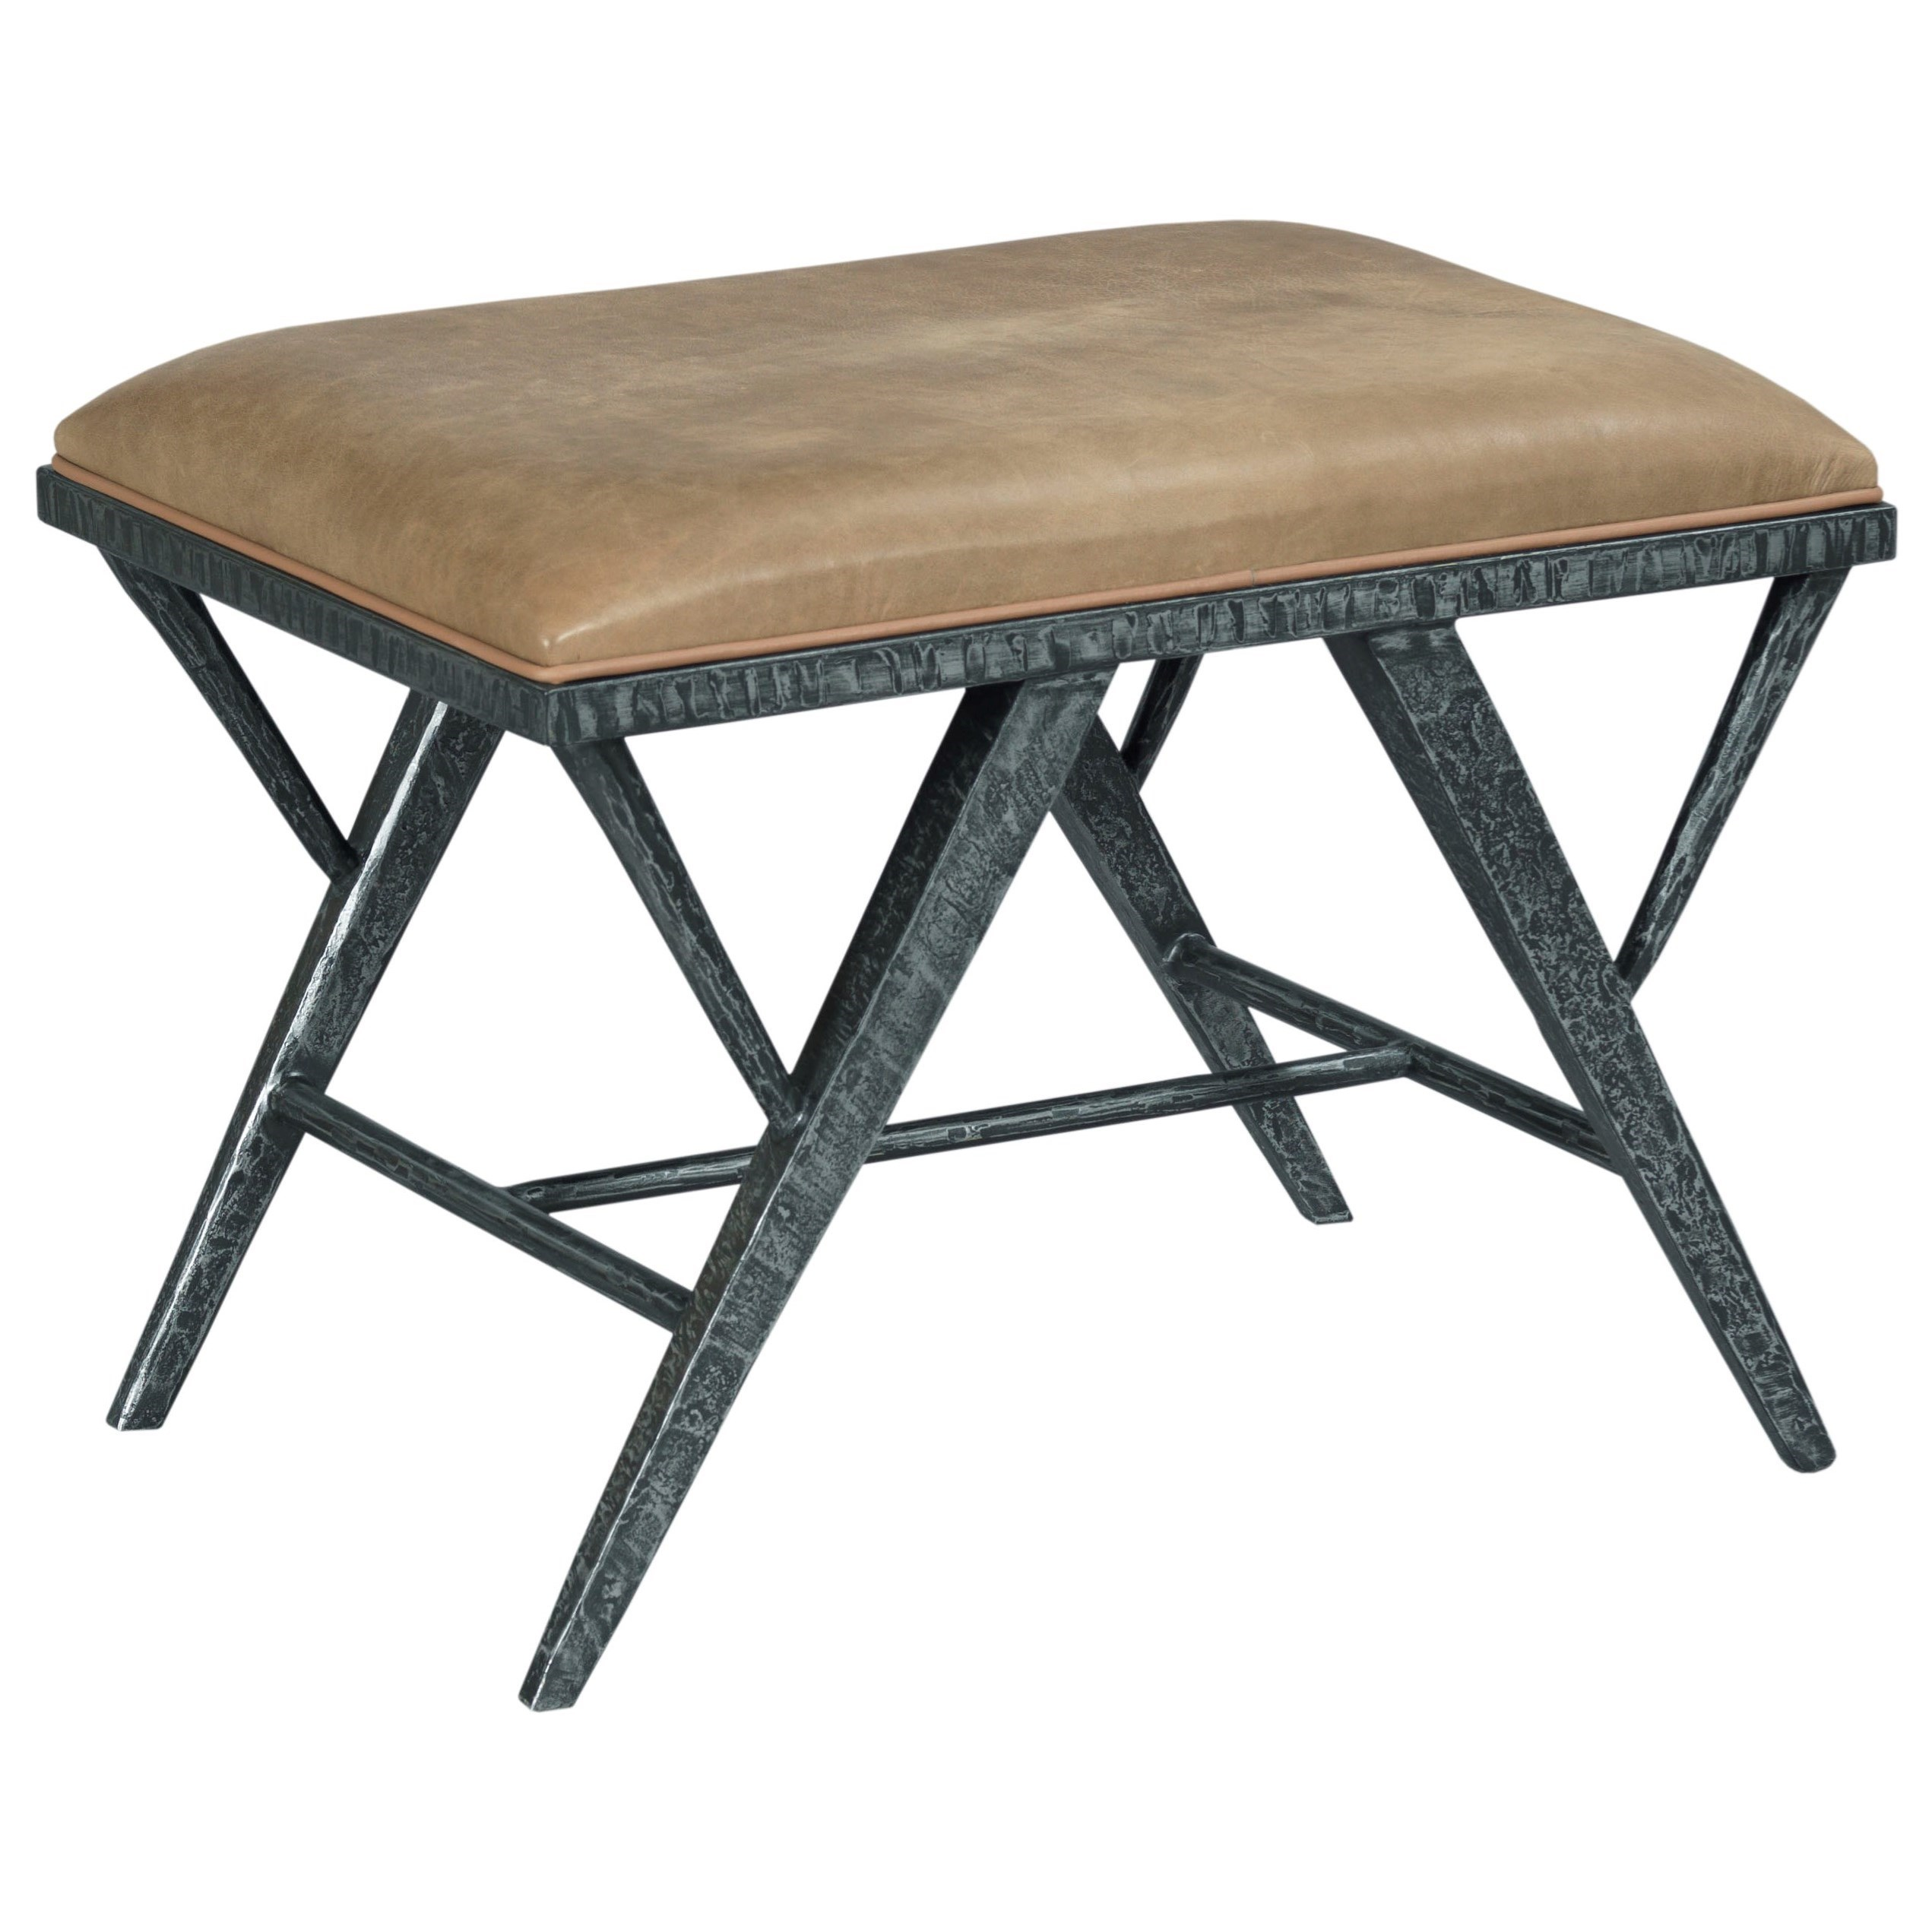 Kincaid Furniture Trails Crafters Metal Bench Lindy S Furniture Company Upholstered Benches